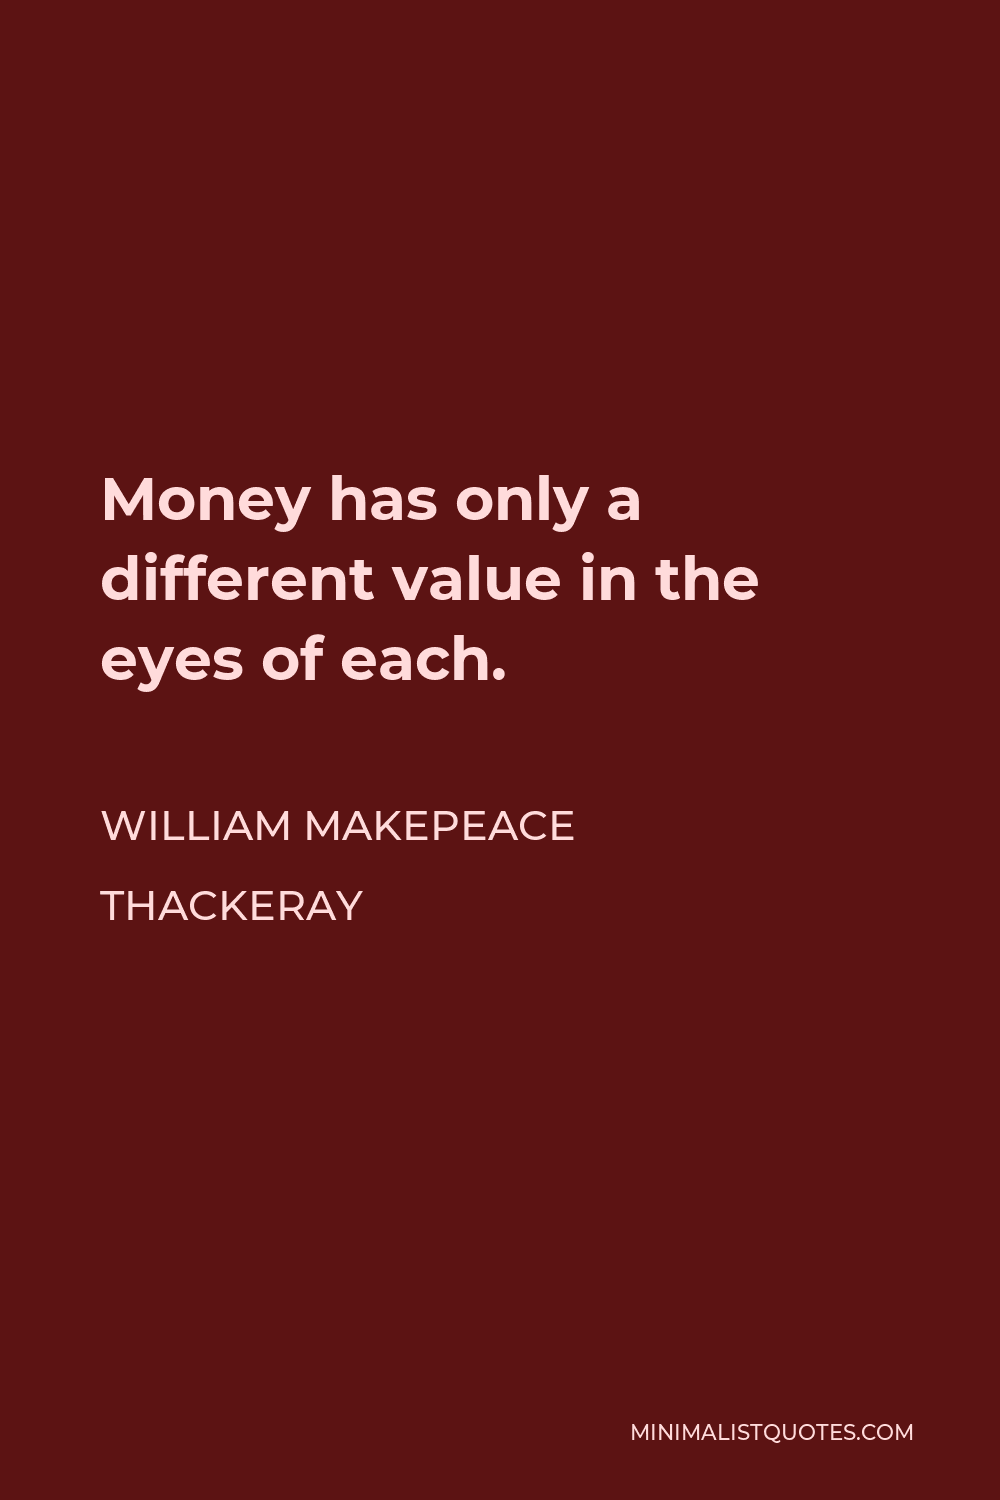 William Makepeace Thackeray Quote - Money has only a different value in the eyes of each.